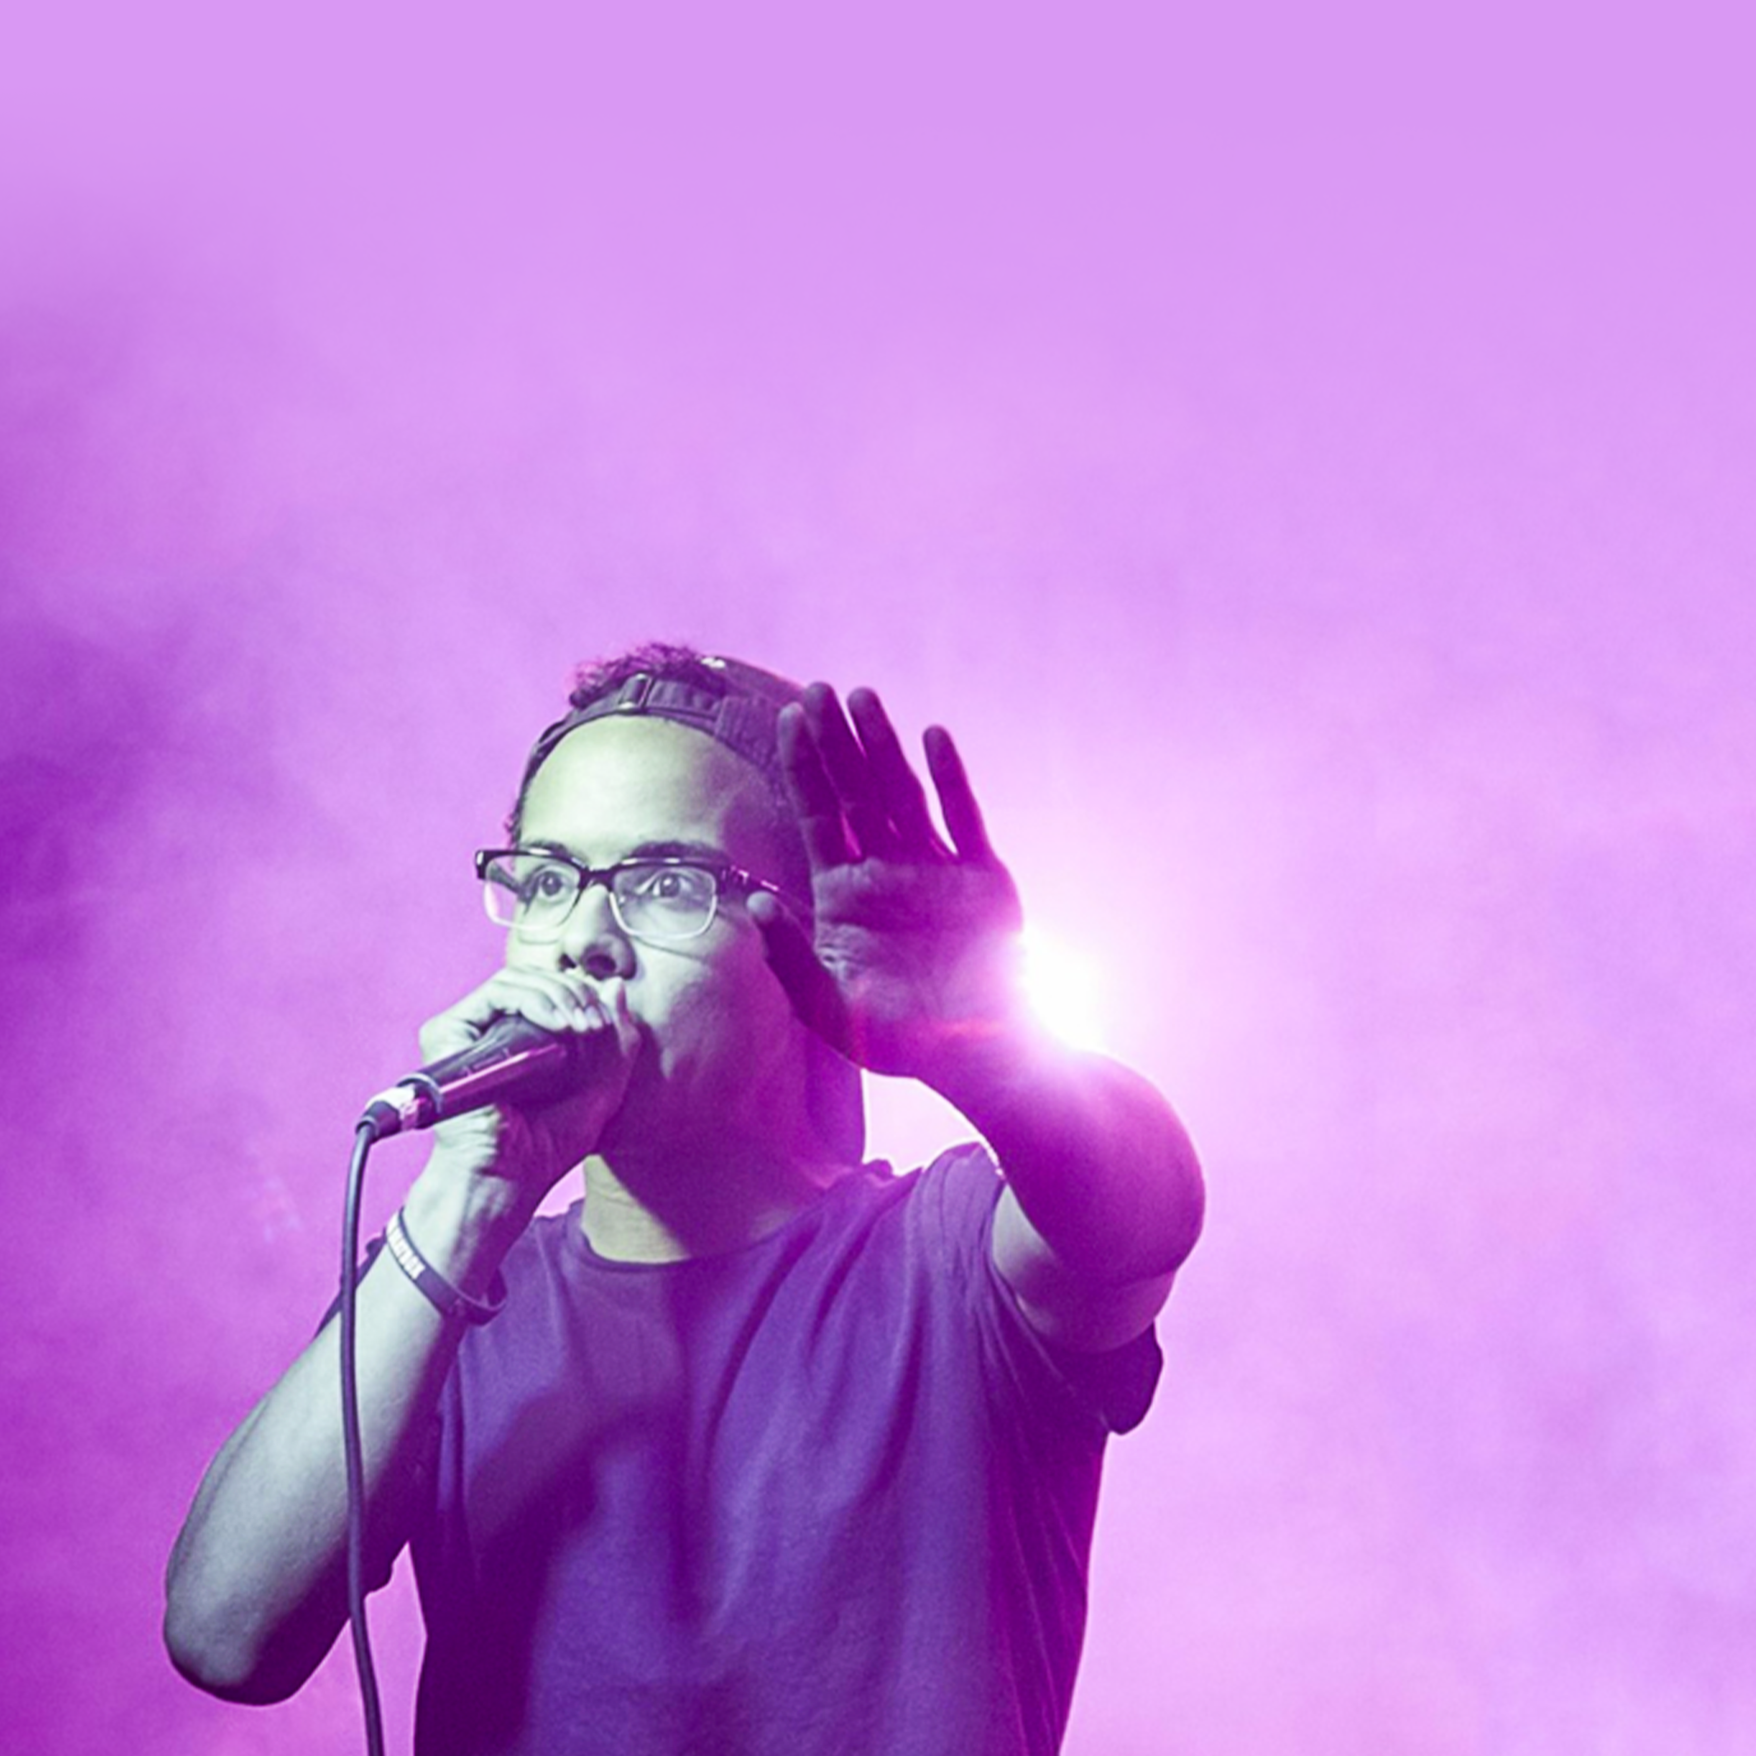 BEATBOXING - PERFORMANCE, EDUCATION, RESEARCH